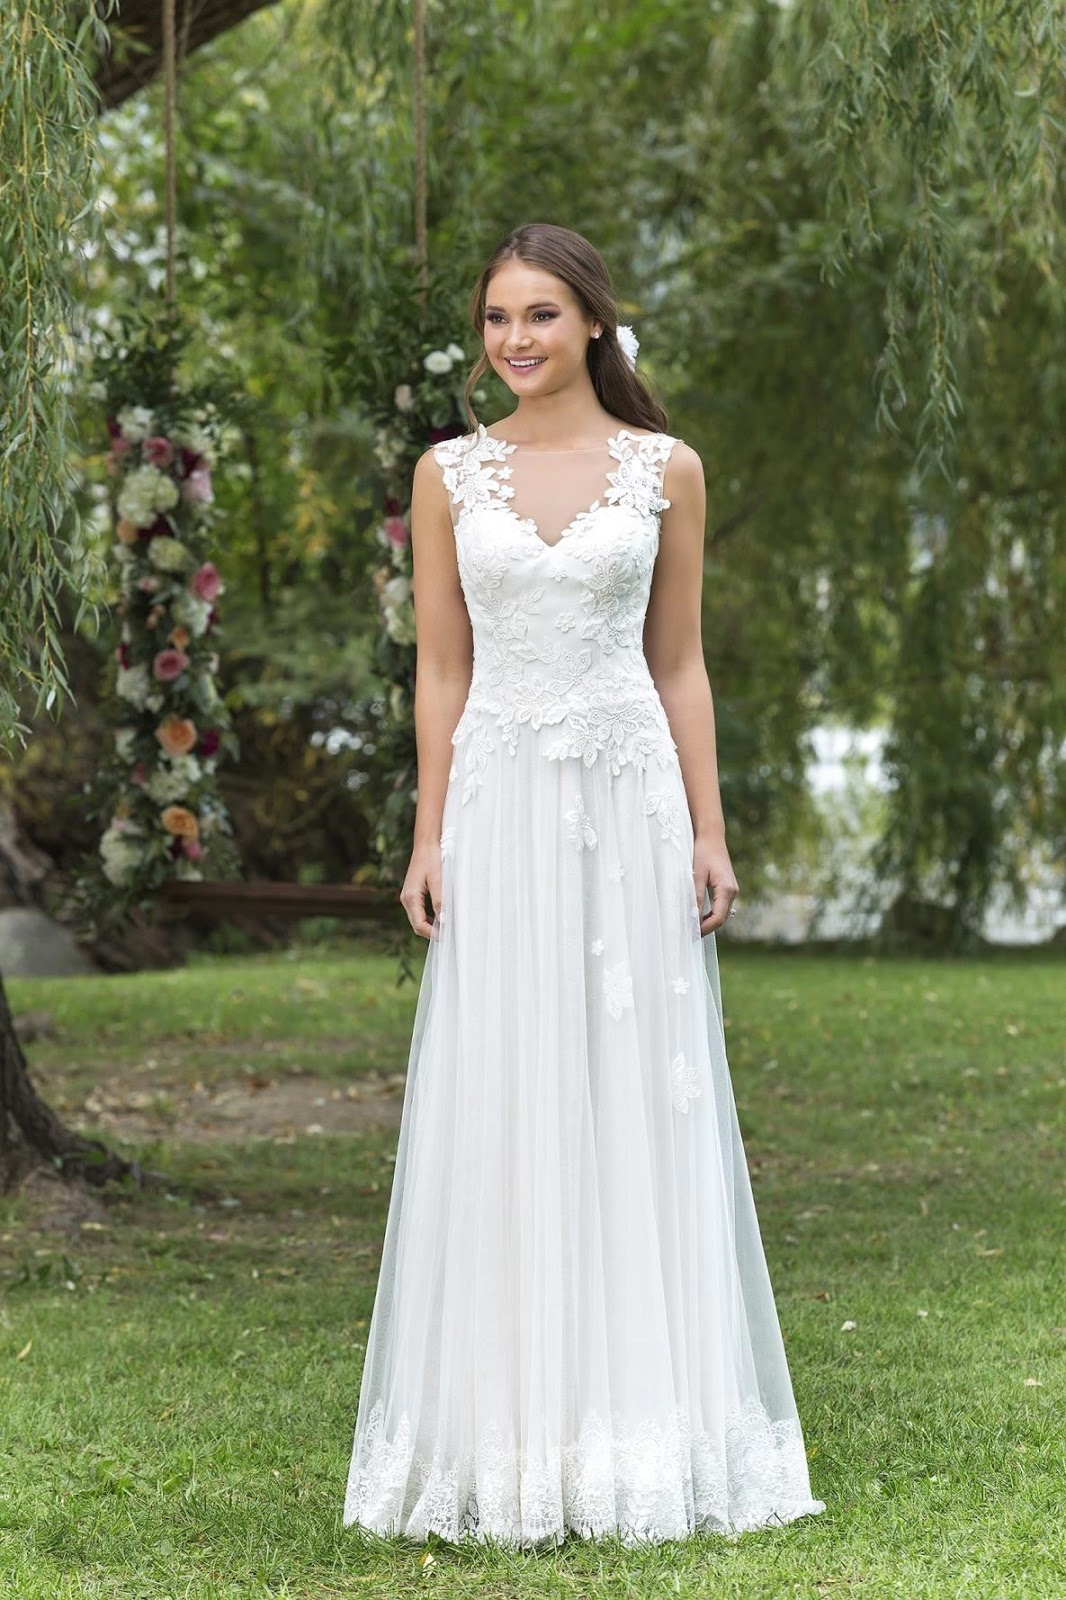 Top 15 Trends In Wedding Clothes To Watch Around The World